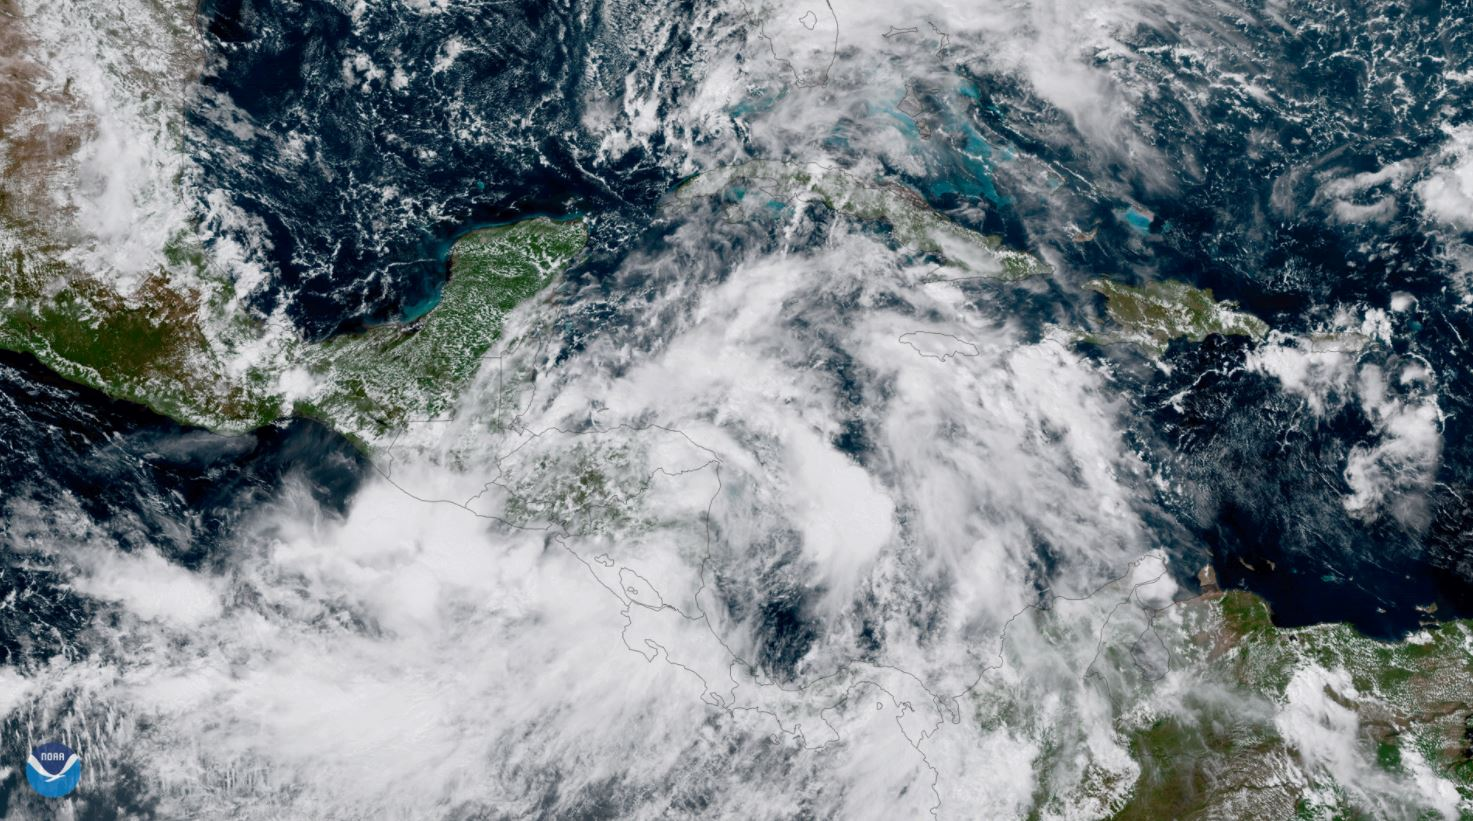 Tropical Storm Nate is seen over Central America. (Photo courtesy of the National Oceanic and Atmospheric Administration)